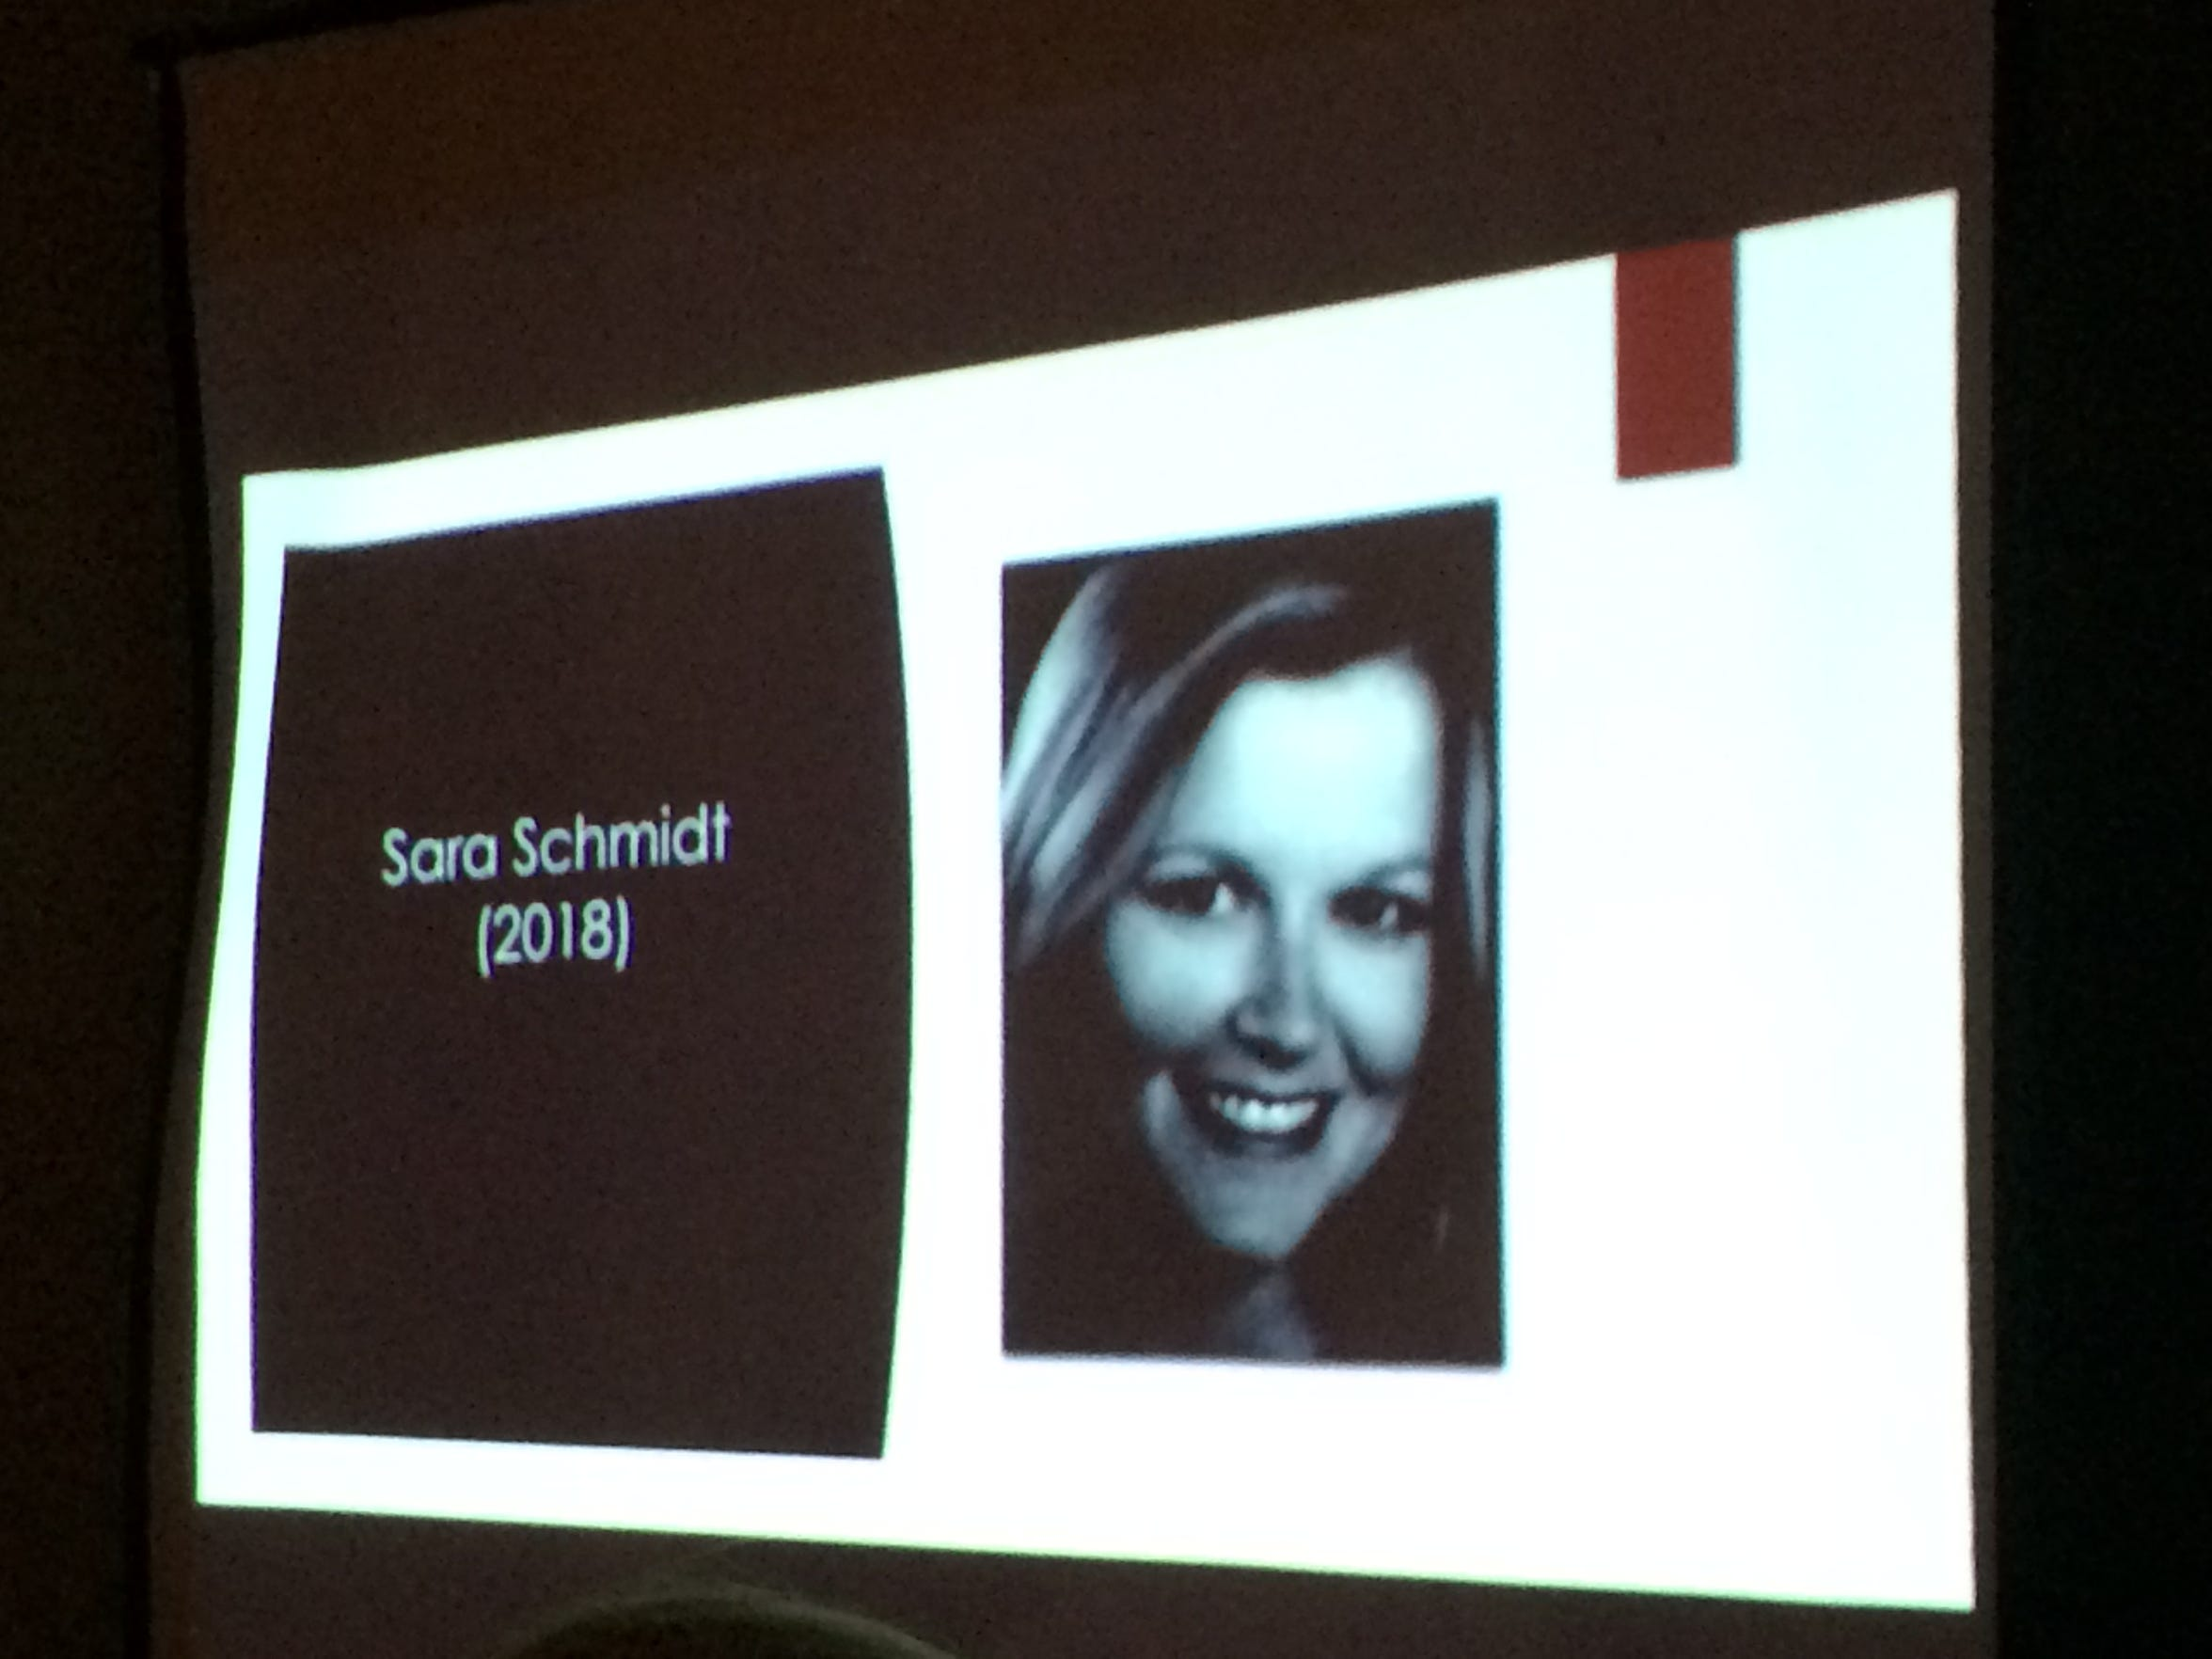 A slideshow shows an image of Sara Schmidt at a vigil. Schmidt died at the hands of her husband, Robert, in January.